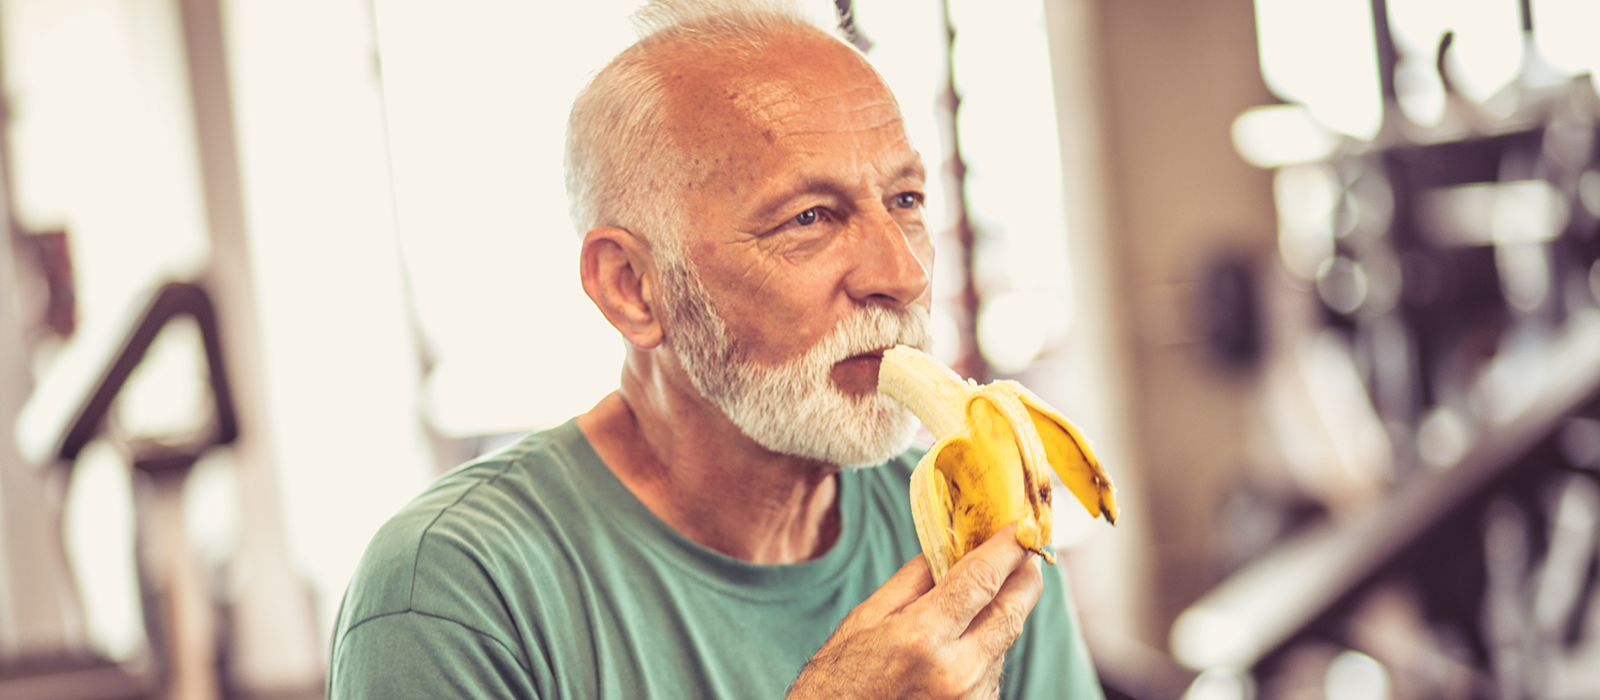 6 Signs Youre Not Eating Enough Potassium